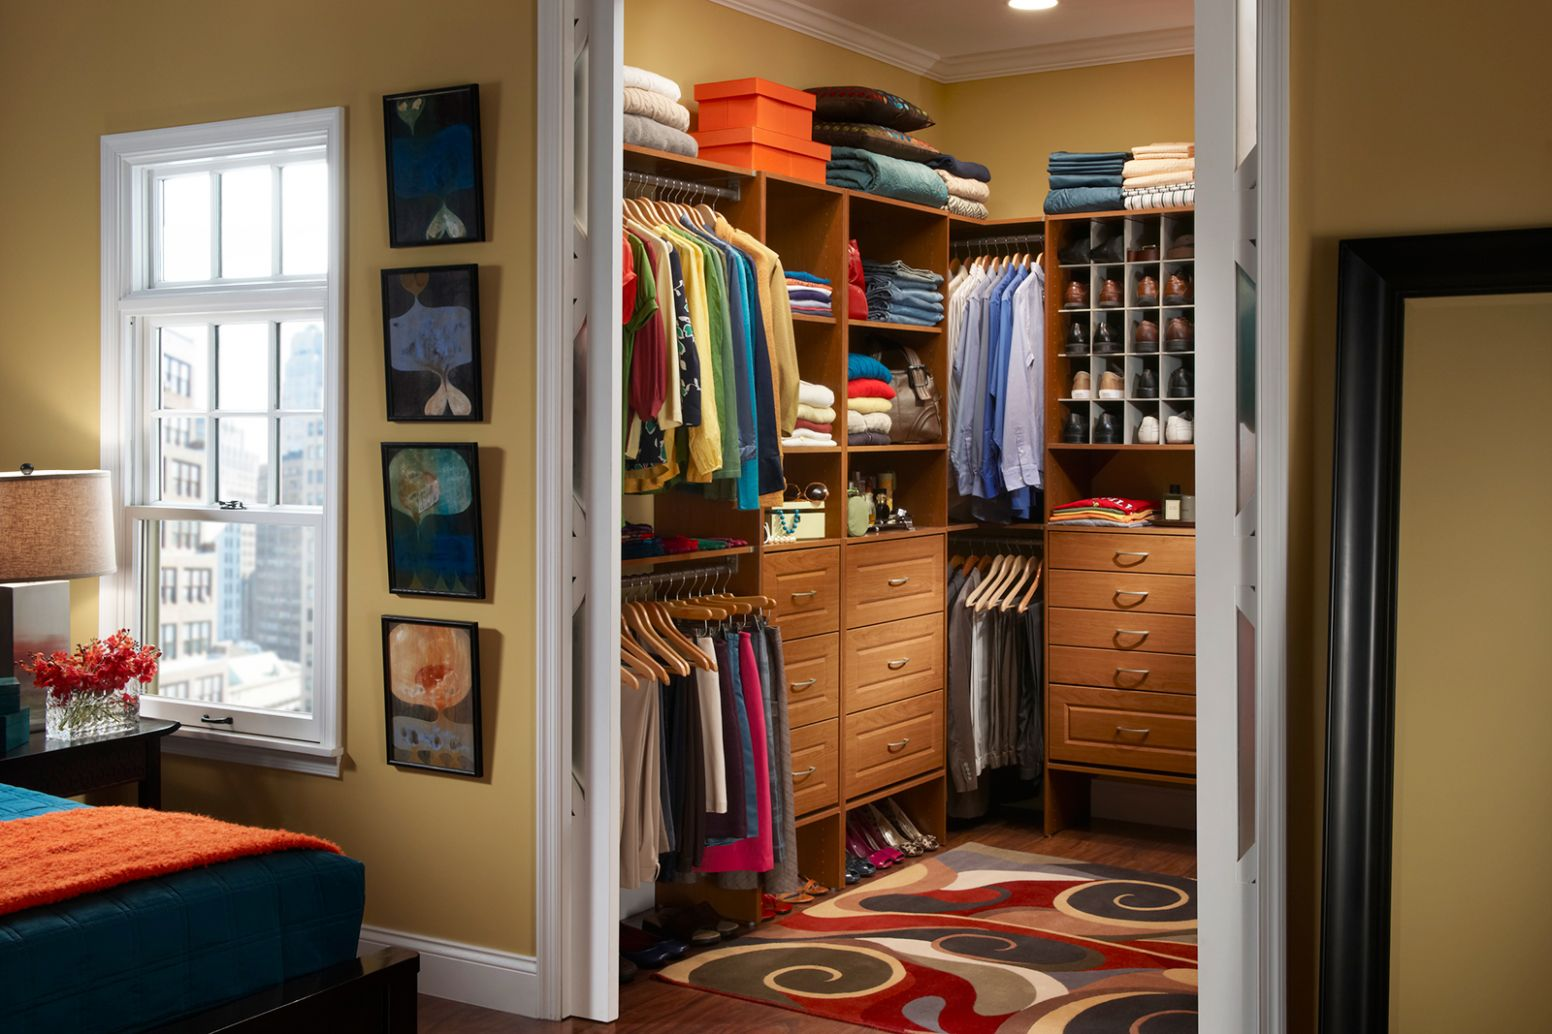 Master Closet Layout | Organizing Your Master Closet - closet arrangement ideas